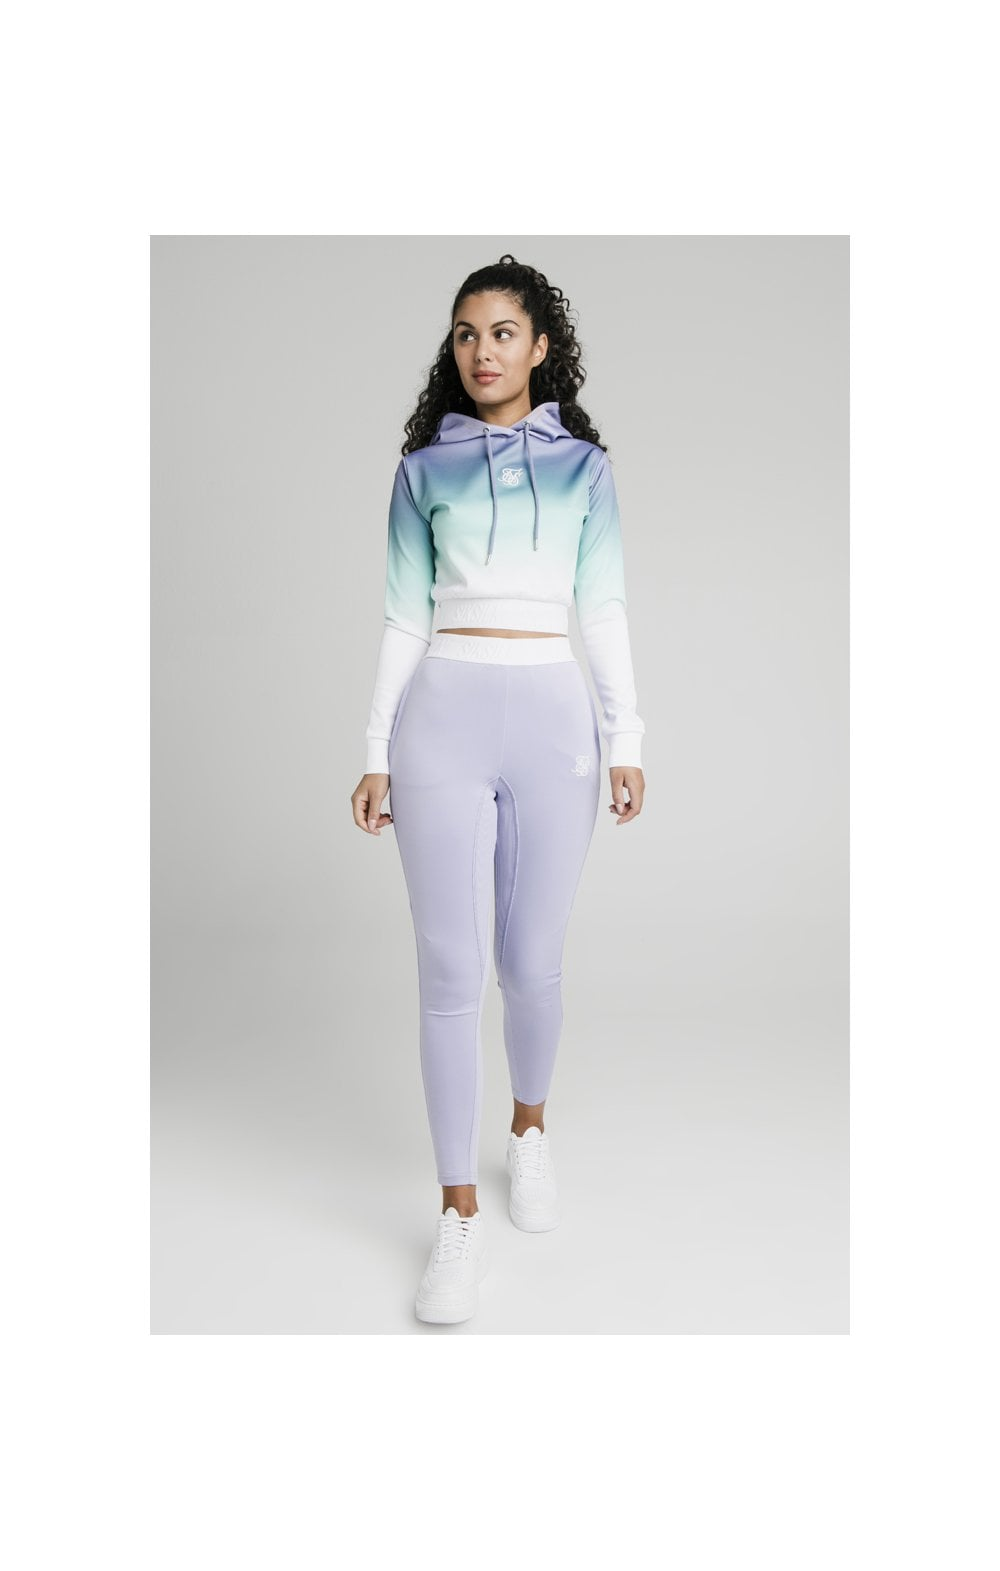 SikSilk Lilac Haze Track Top - Lilac, Turquoise & White (2)